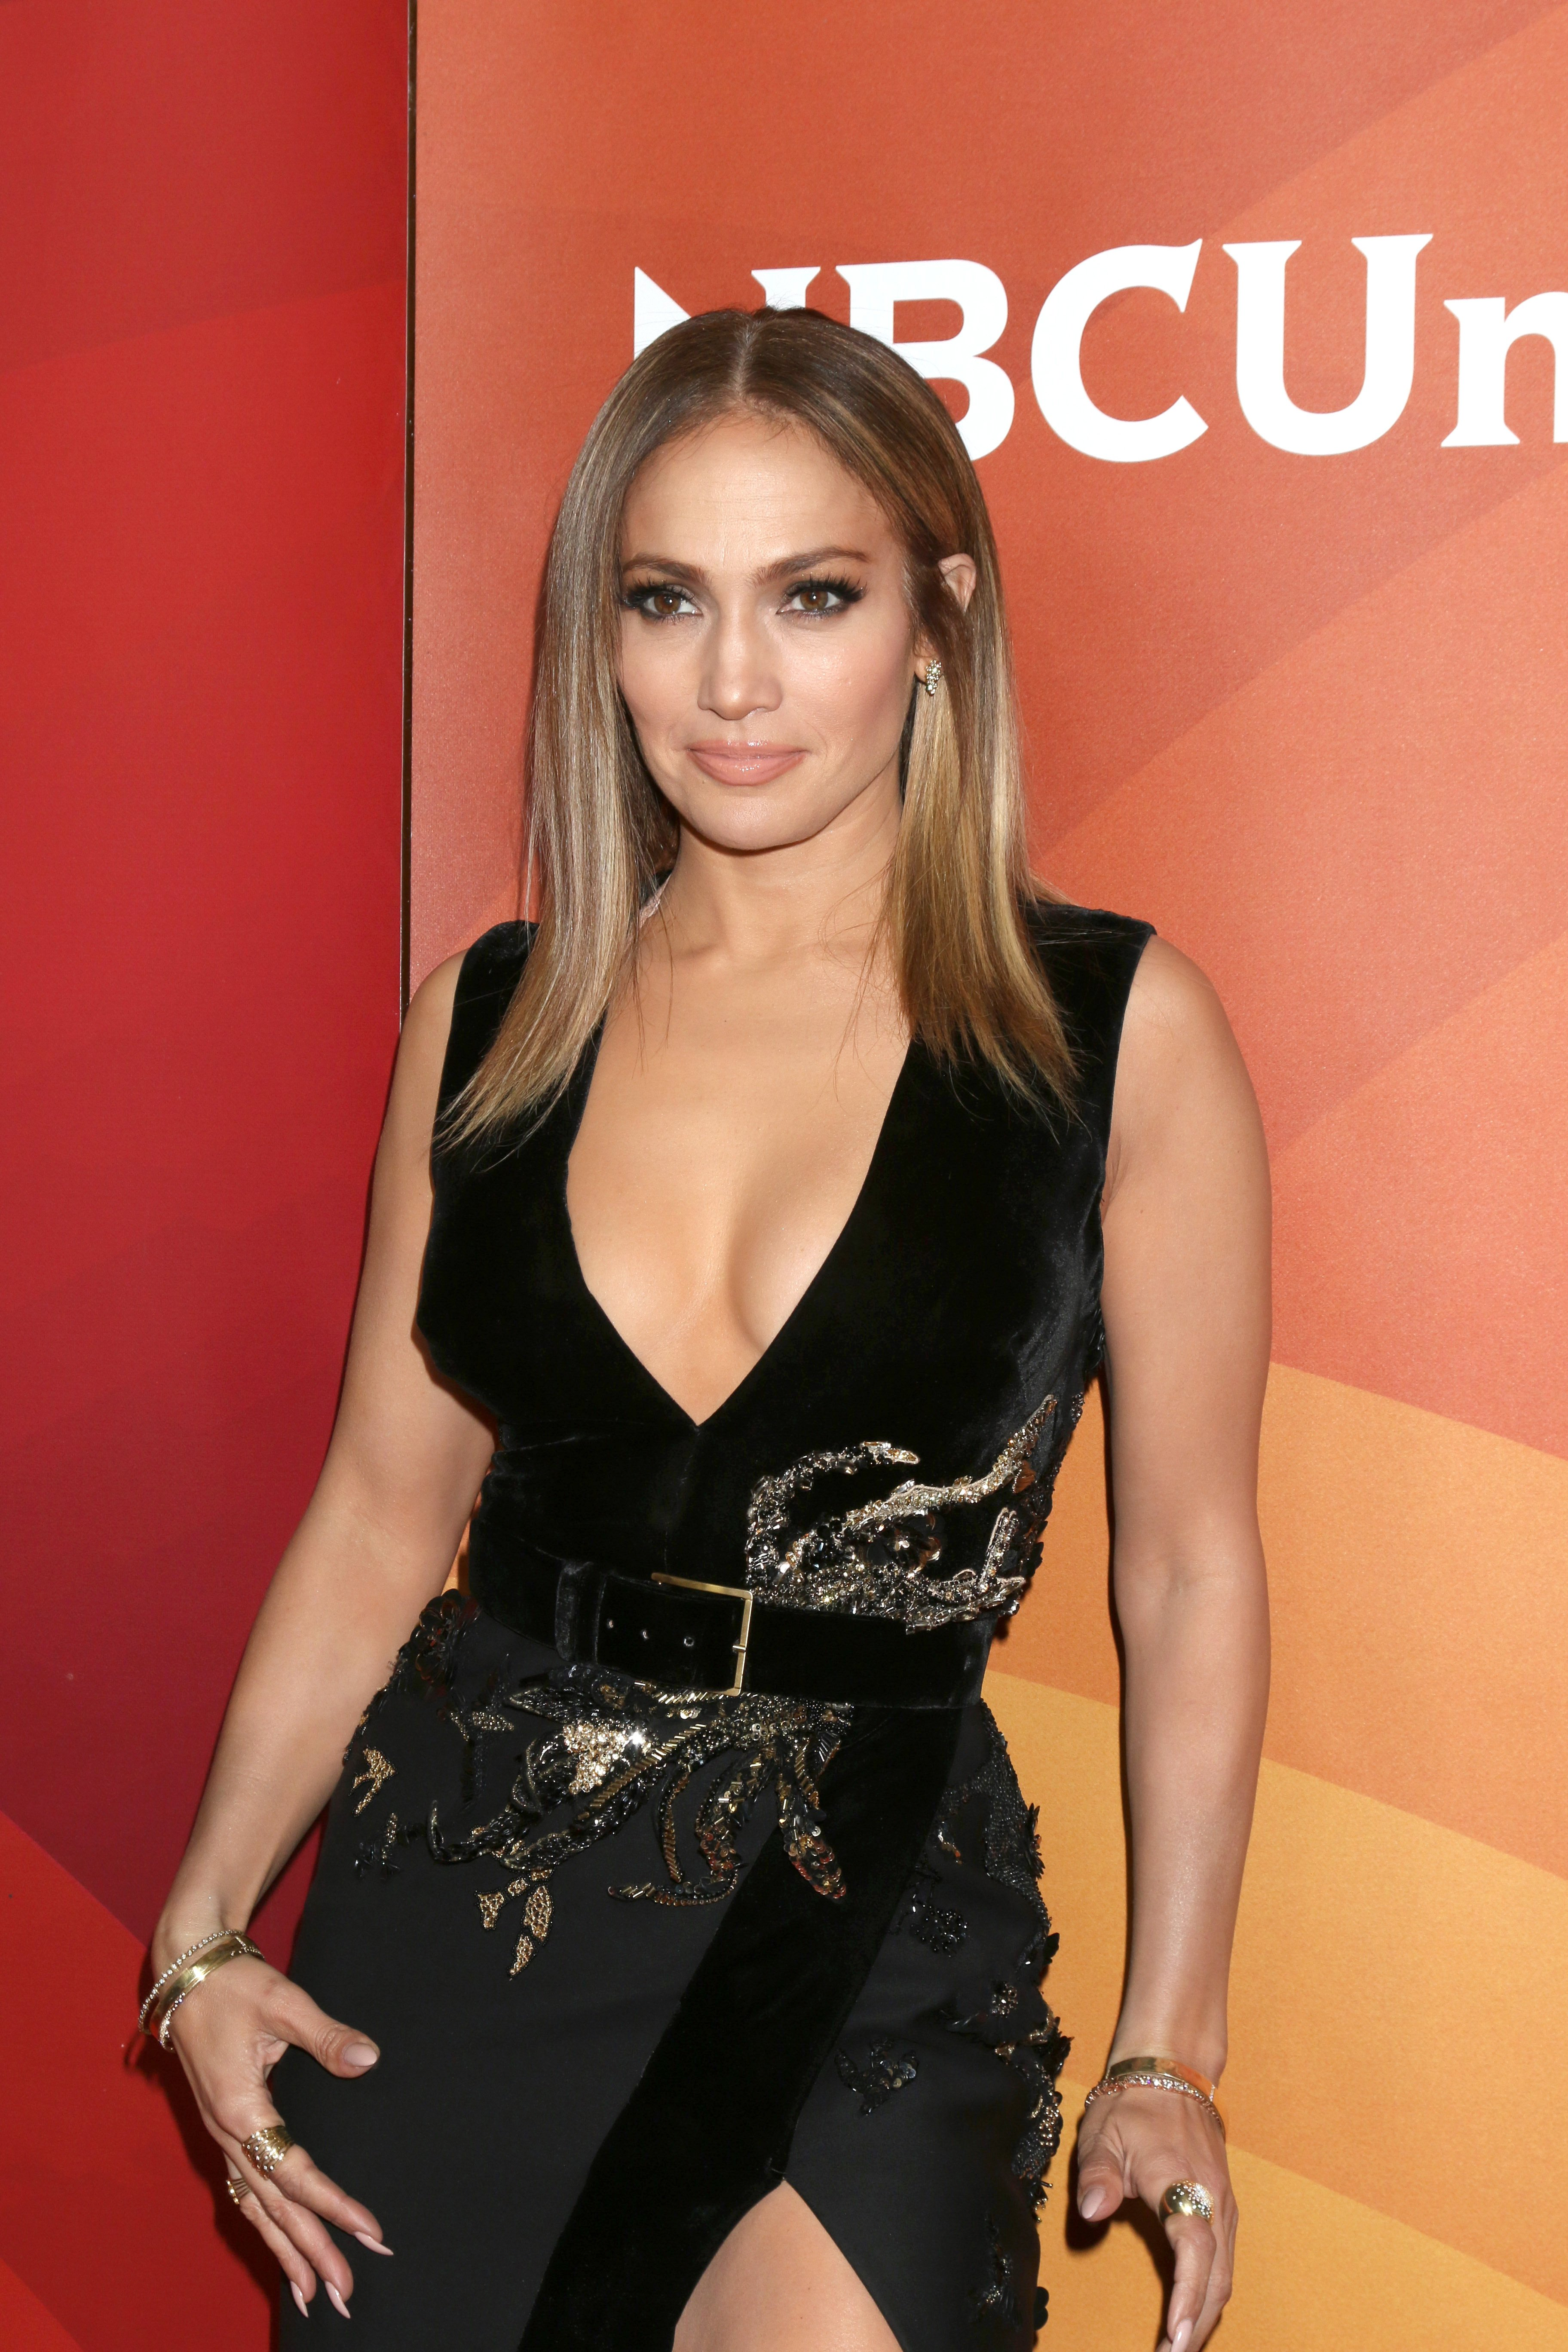 Jennifer Lopez at the NBCUniversal Summer Press Day at Beverly Hilton Hotel on March 20, 2017 in Beverly Hills, CA | Photo: Shutterstock